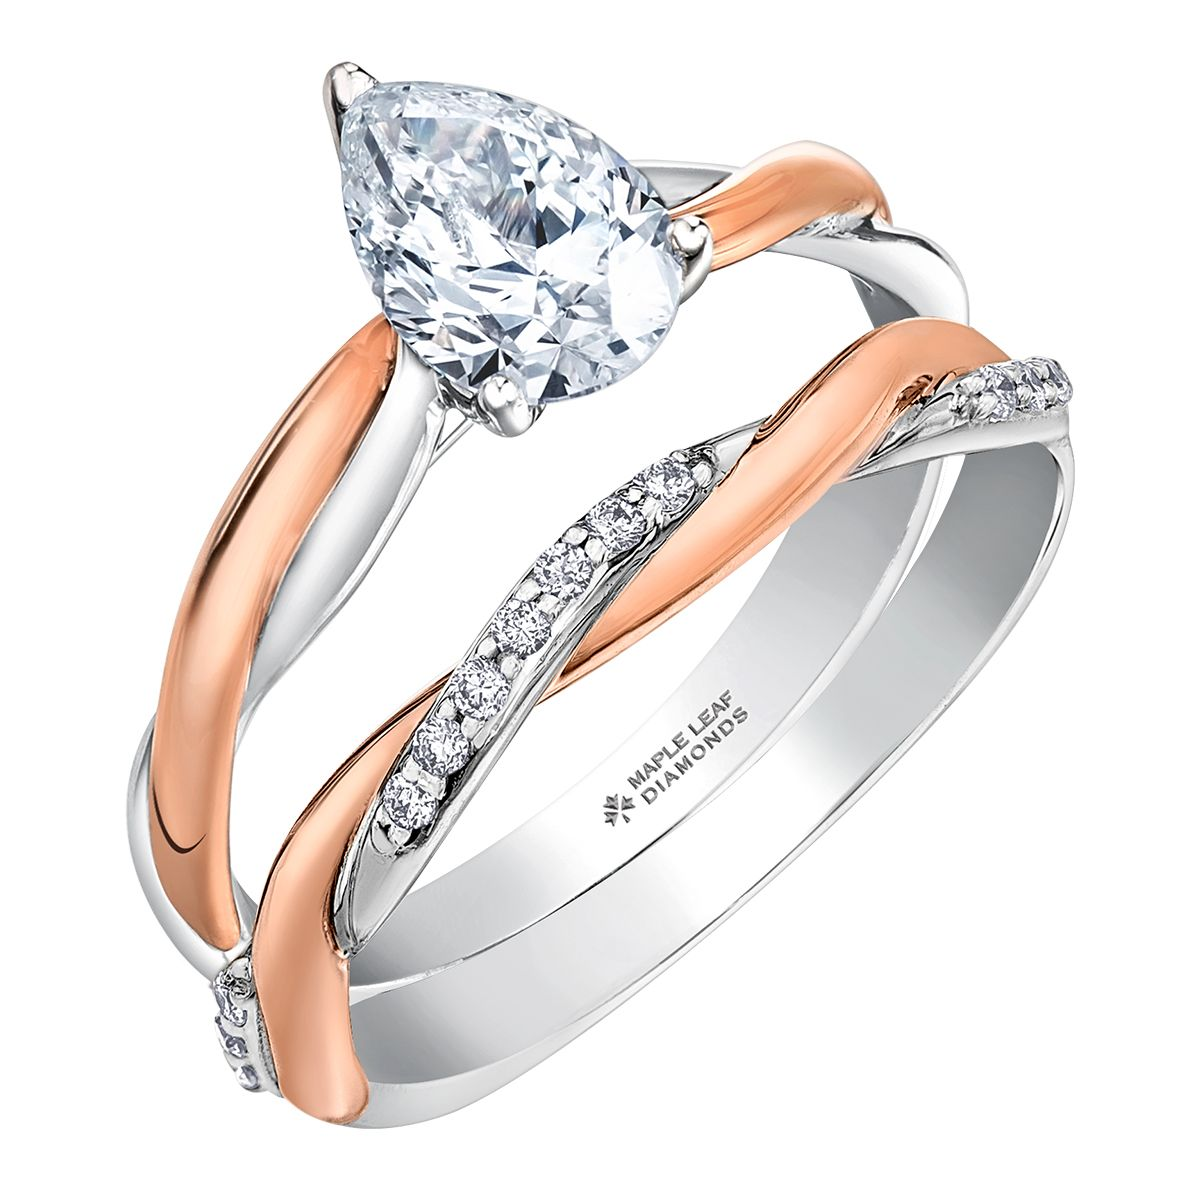 Canadian Pear Shaped Diamond Engagement Ring with White